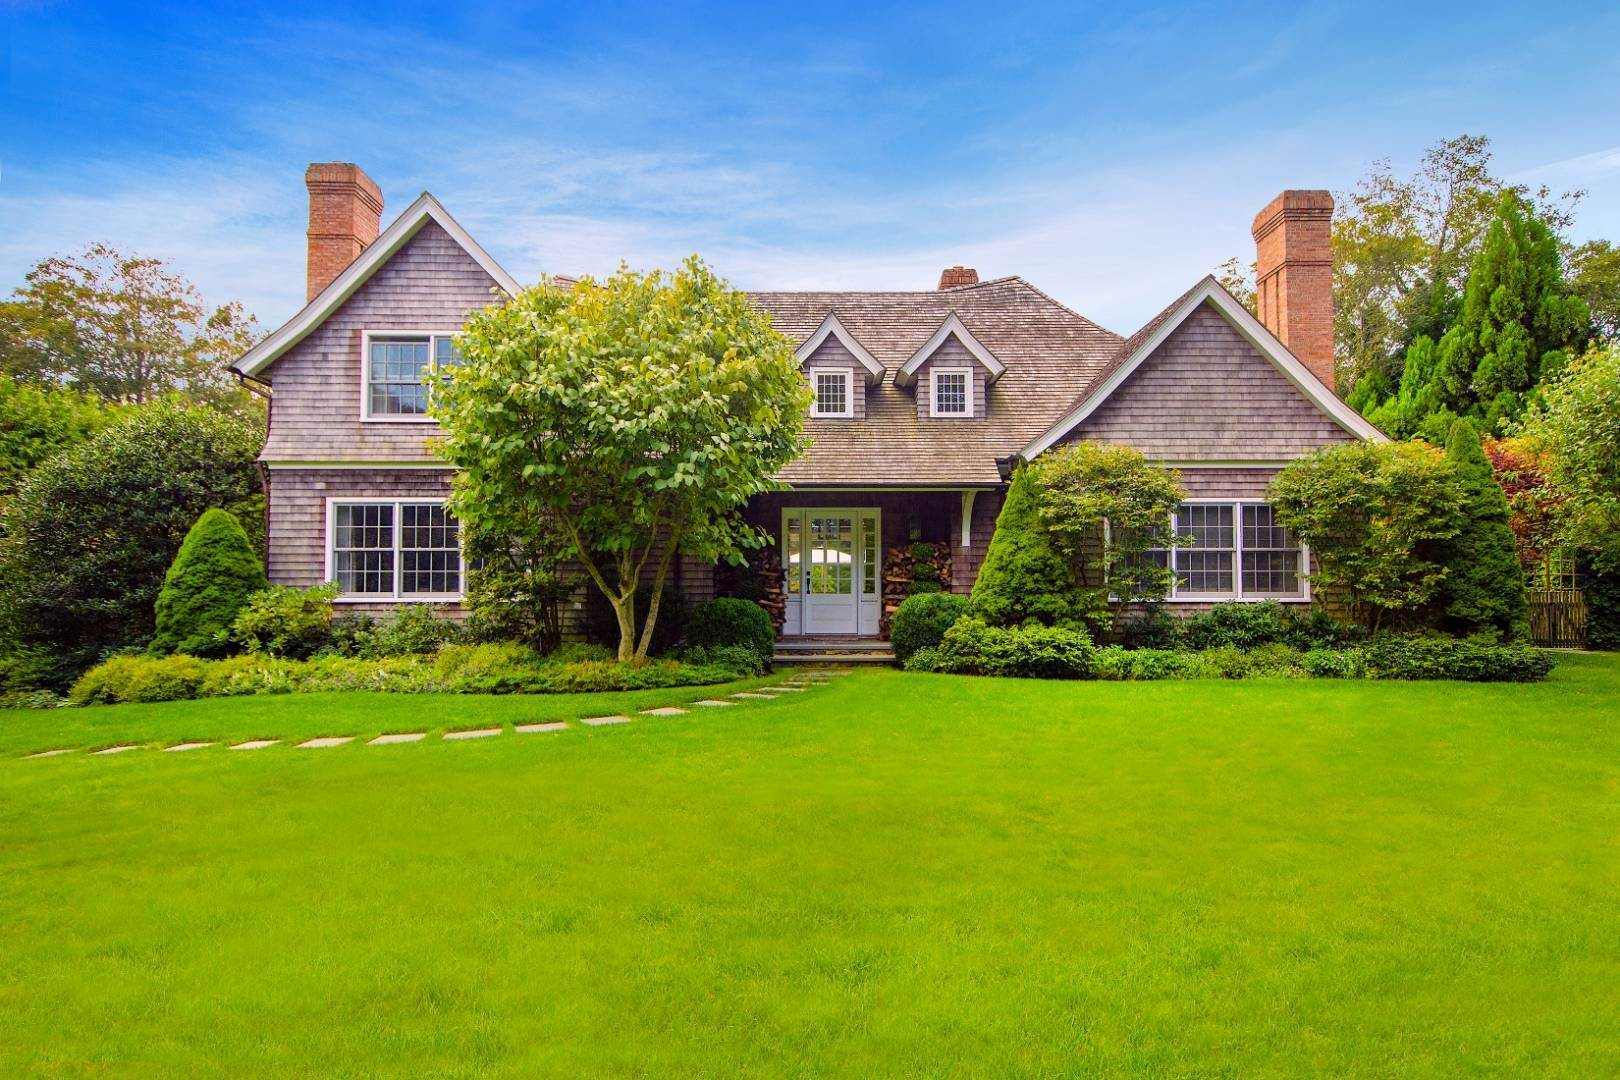 Single Family Home 为 销售 在 Prime Village South Location 67 Huntting Lane, East Hampton, NY 11937